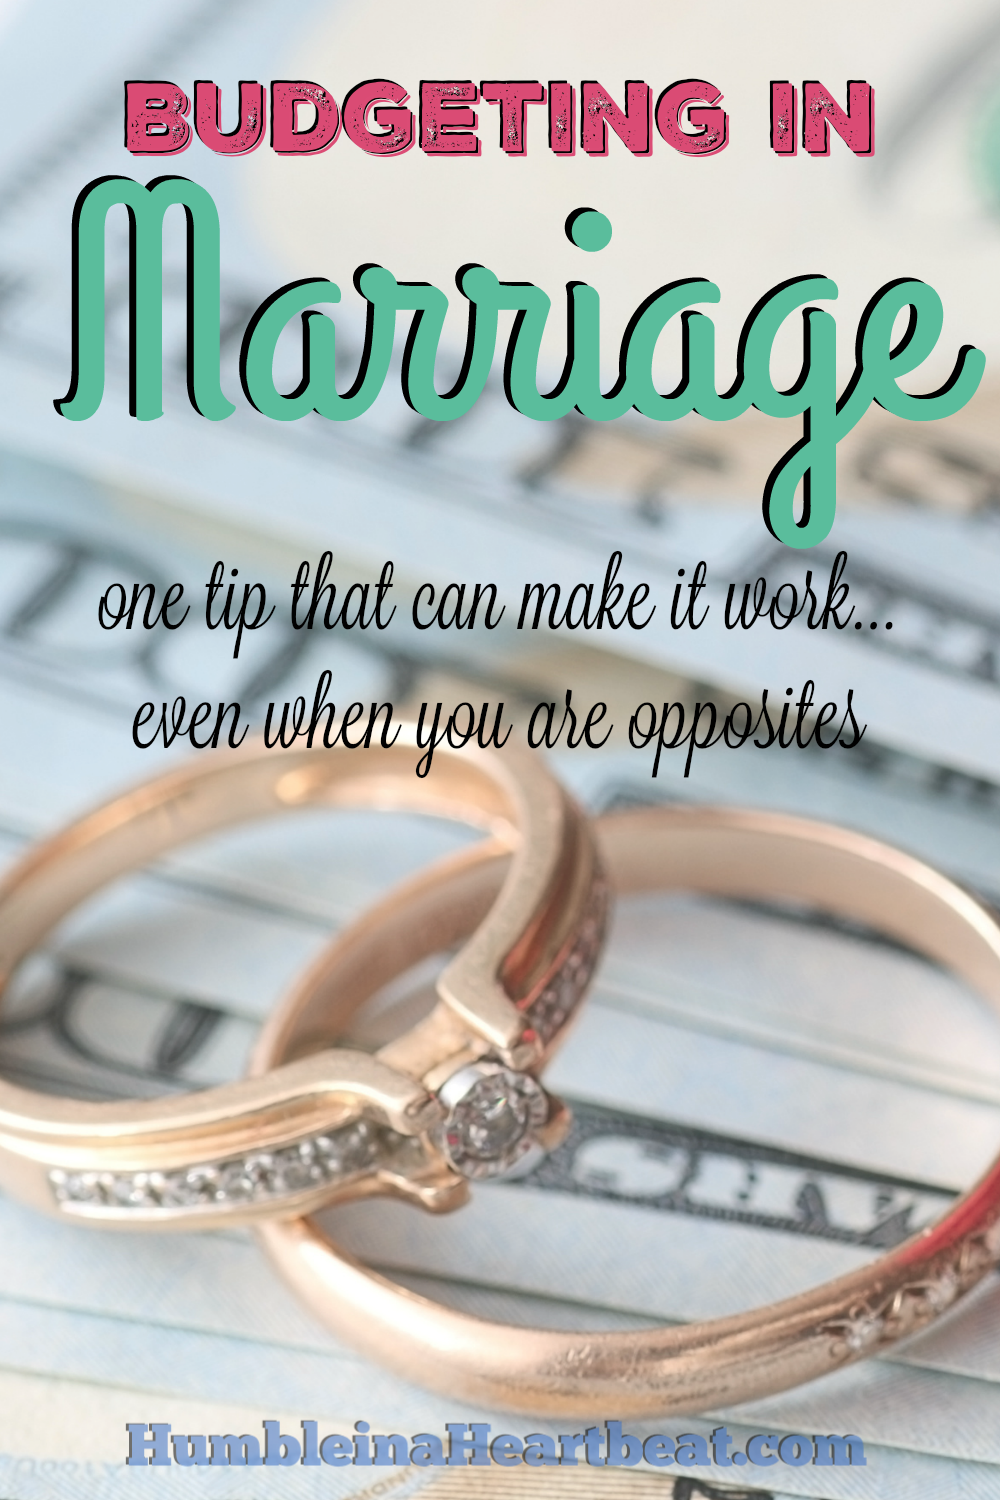 Have you had to deal with money issues in your marriage? You can work through these issues and have less conflict by simply doing one thing. It works for my marriage, and I'm sure it can work in yours.